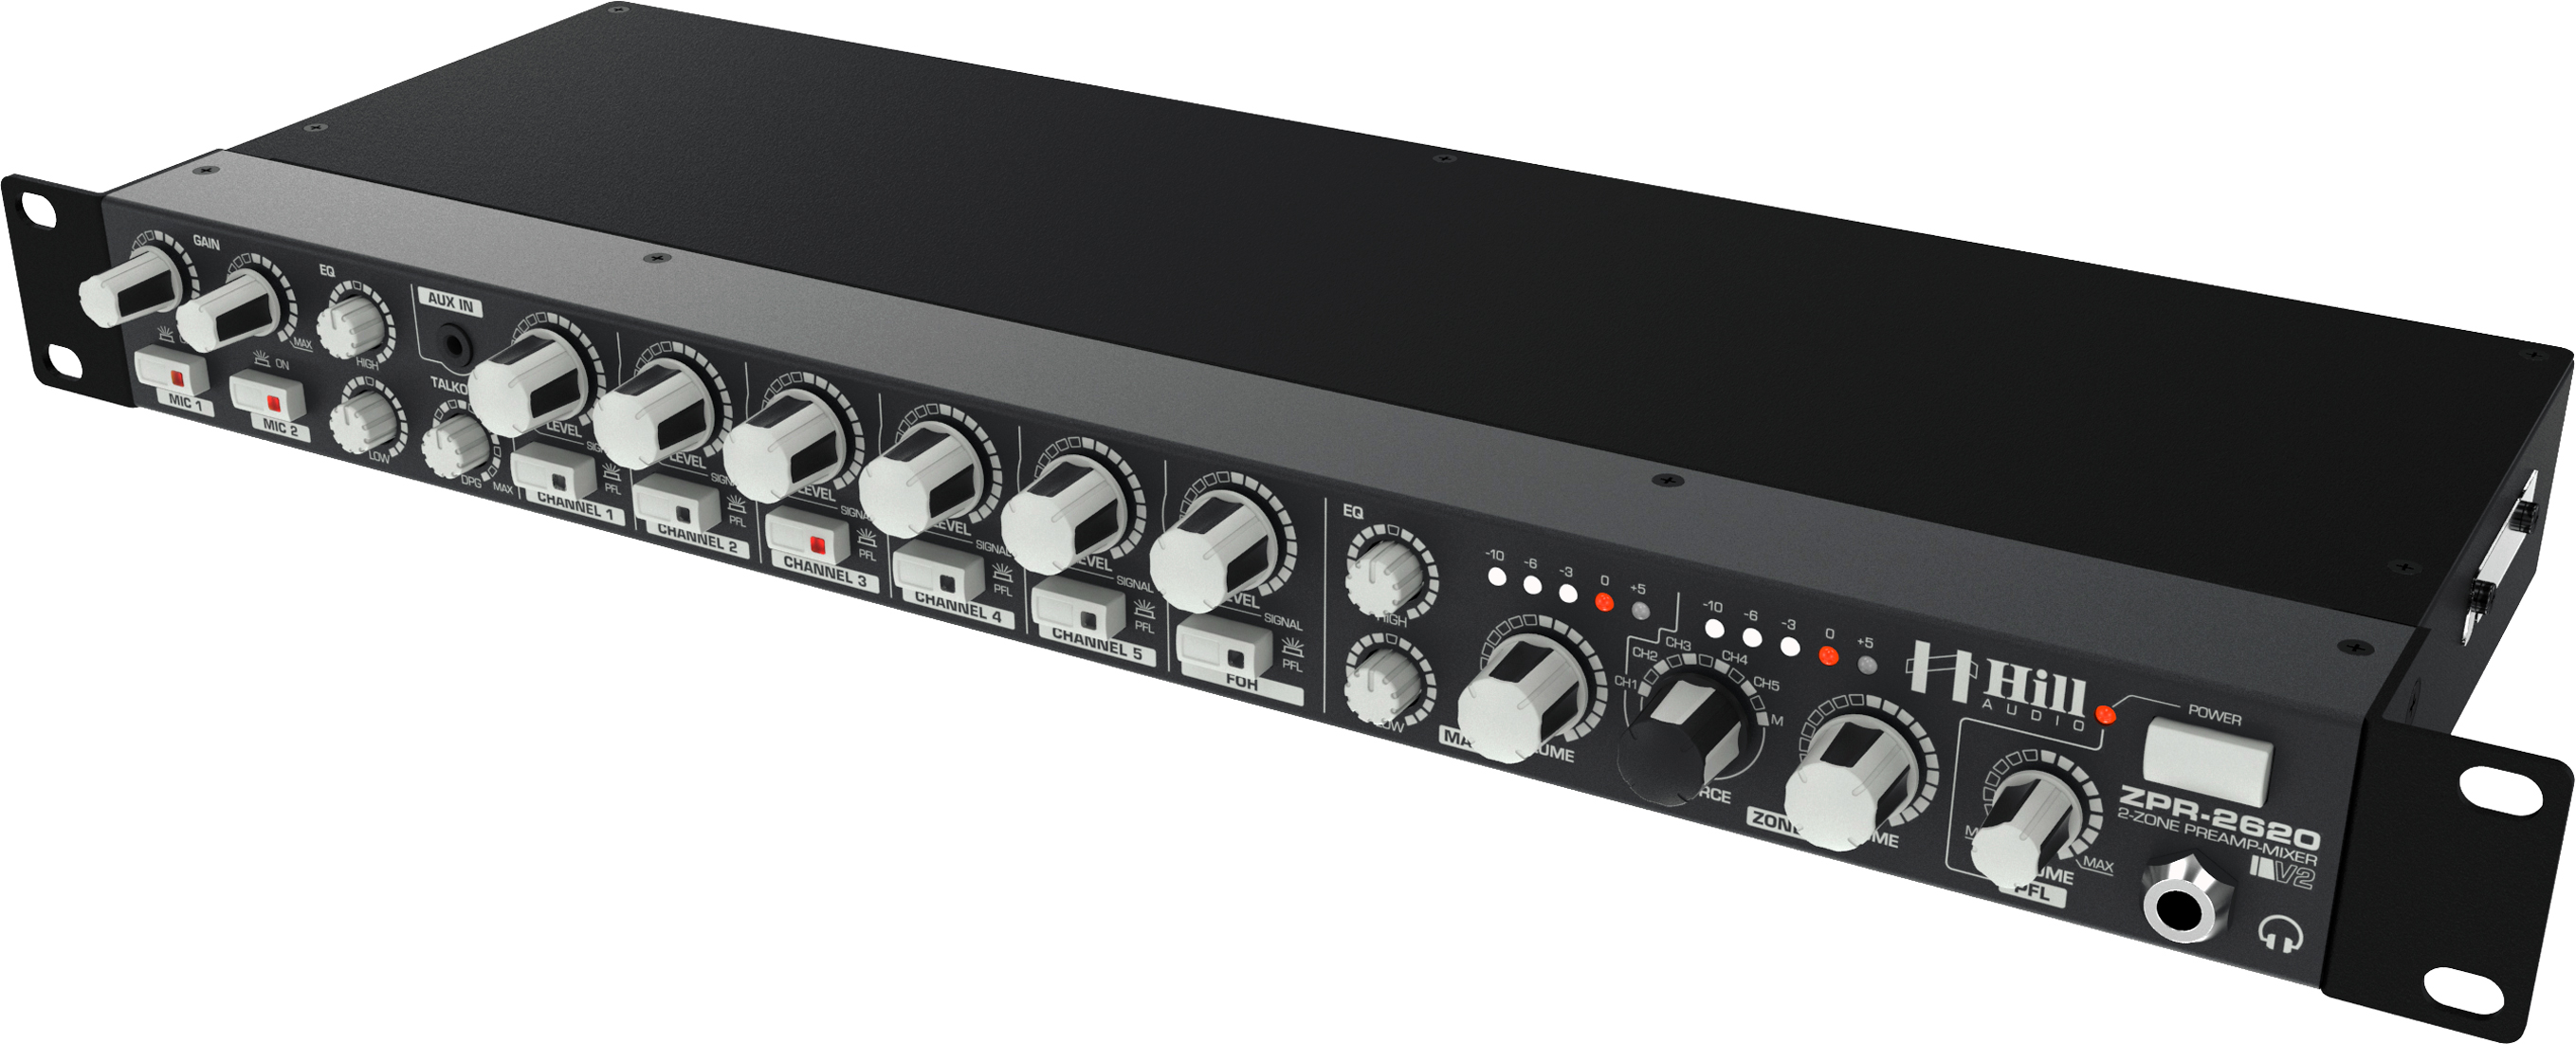 Hill Audio 2-zone mixer 1U m. CascadeZone©